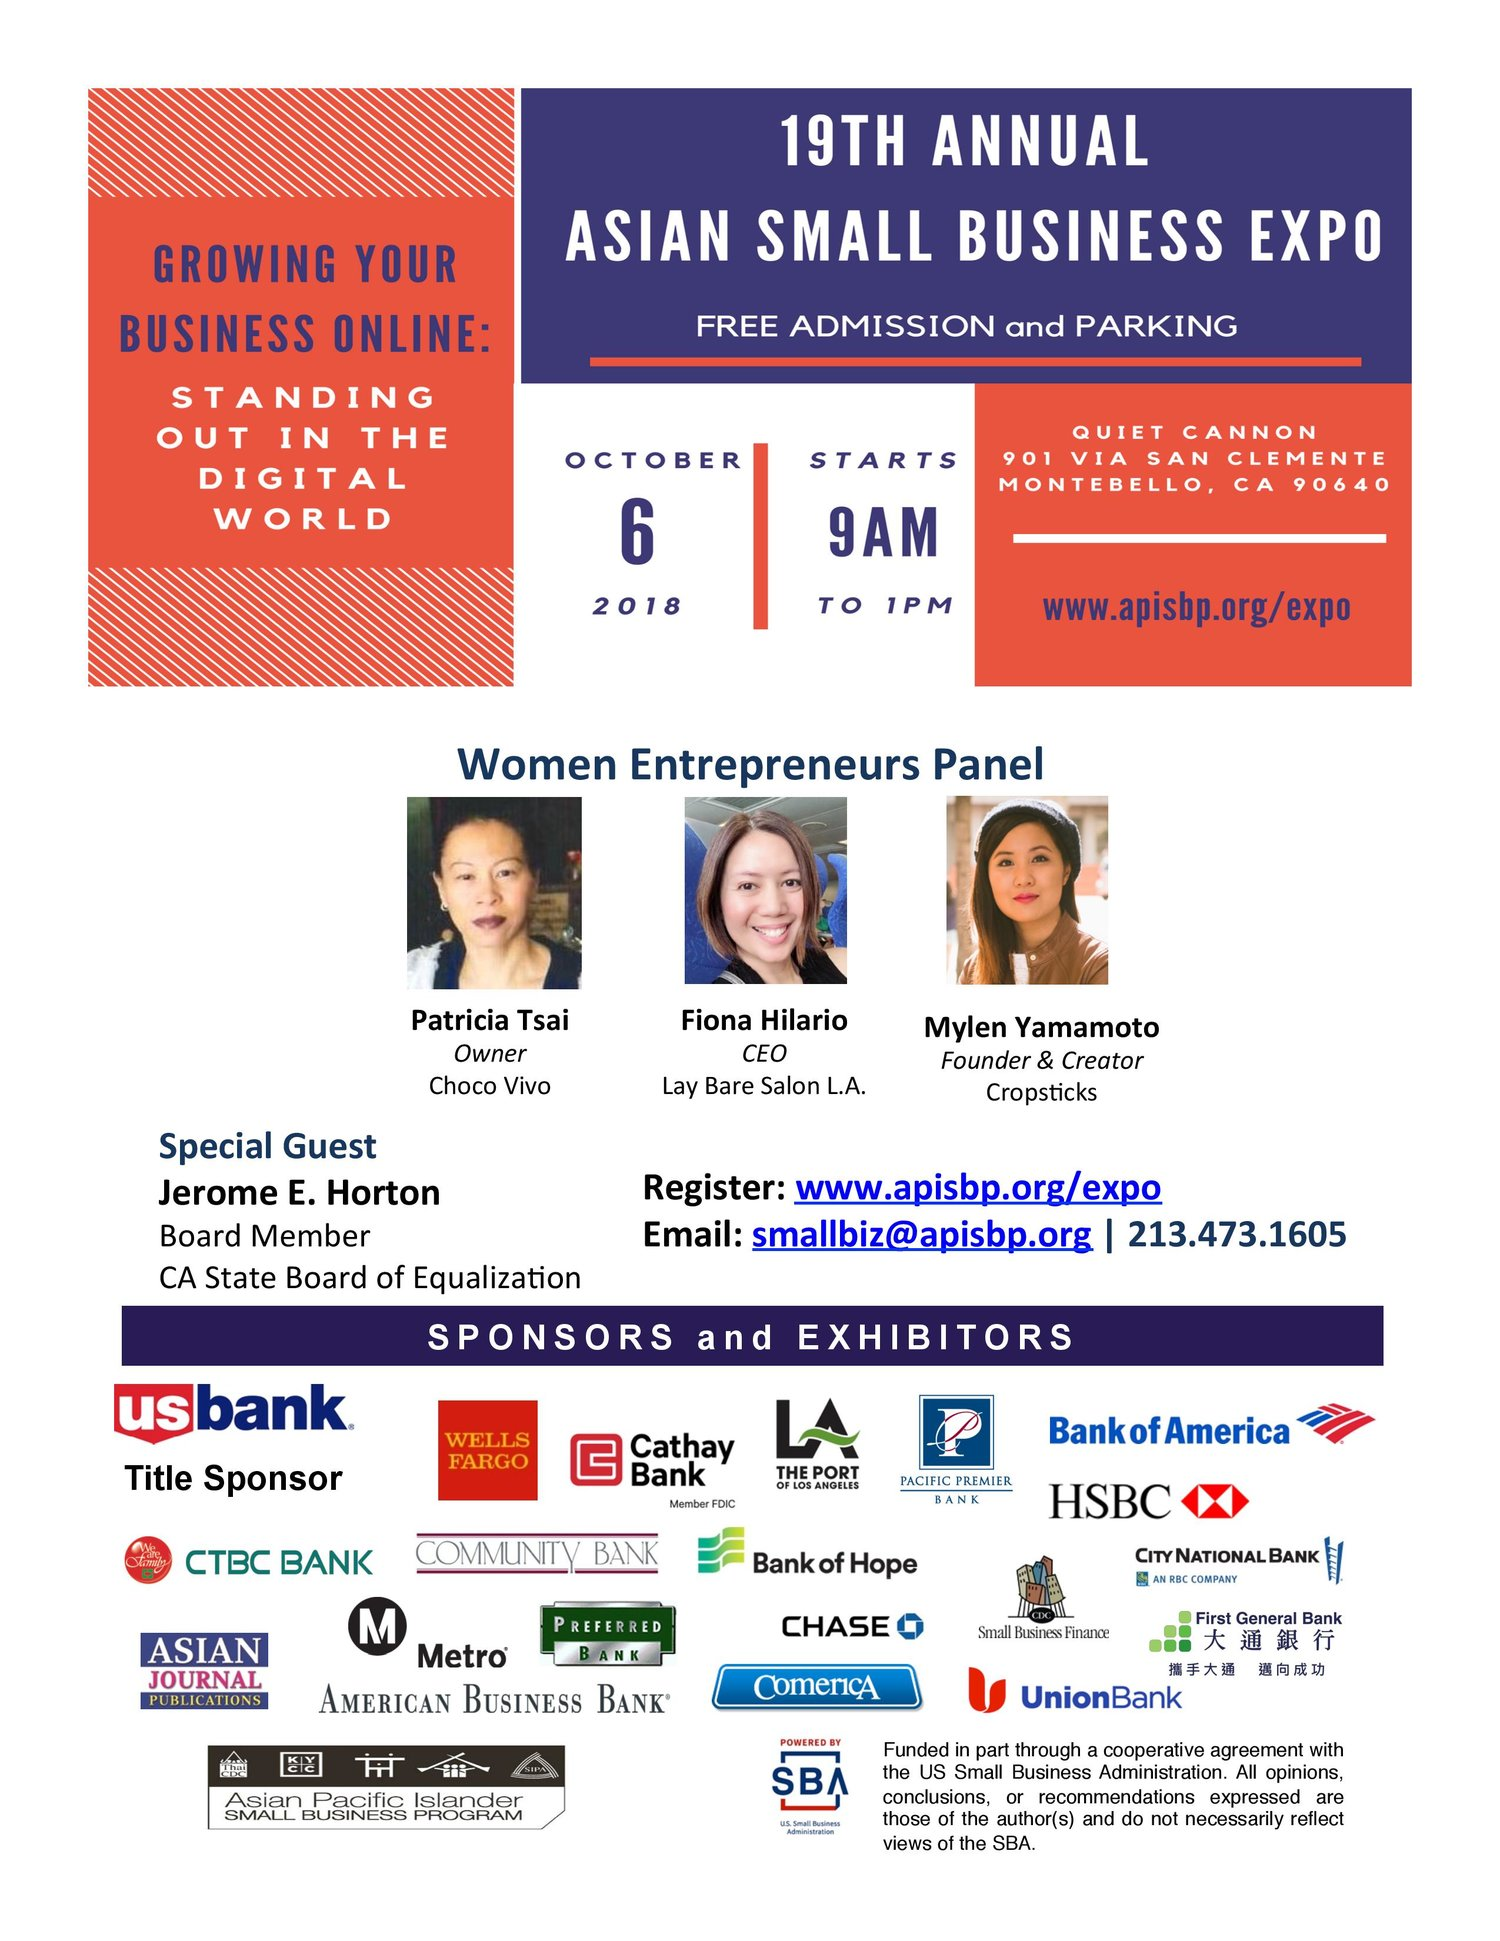 19th Annual Asian Small Business Expo — Rosemead Chamber of